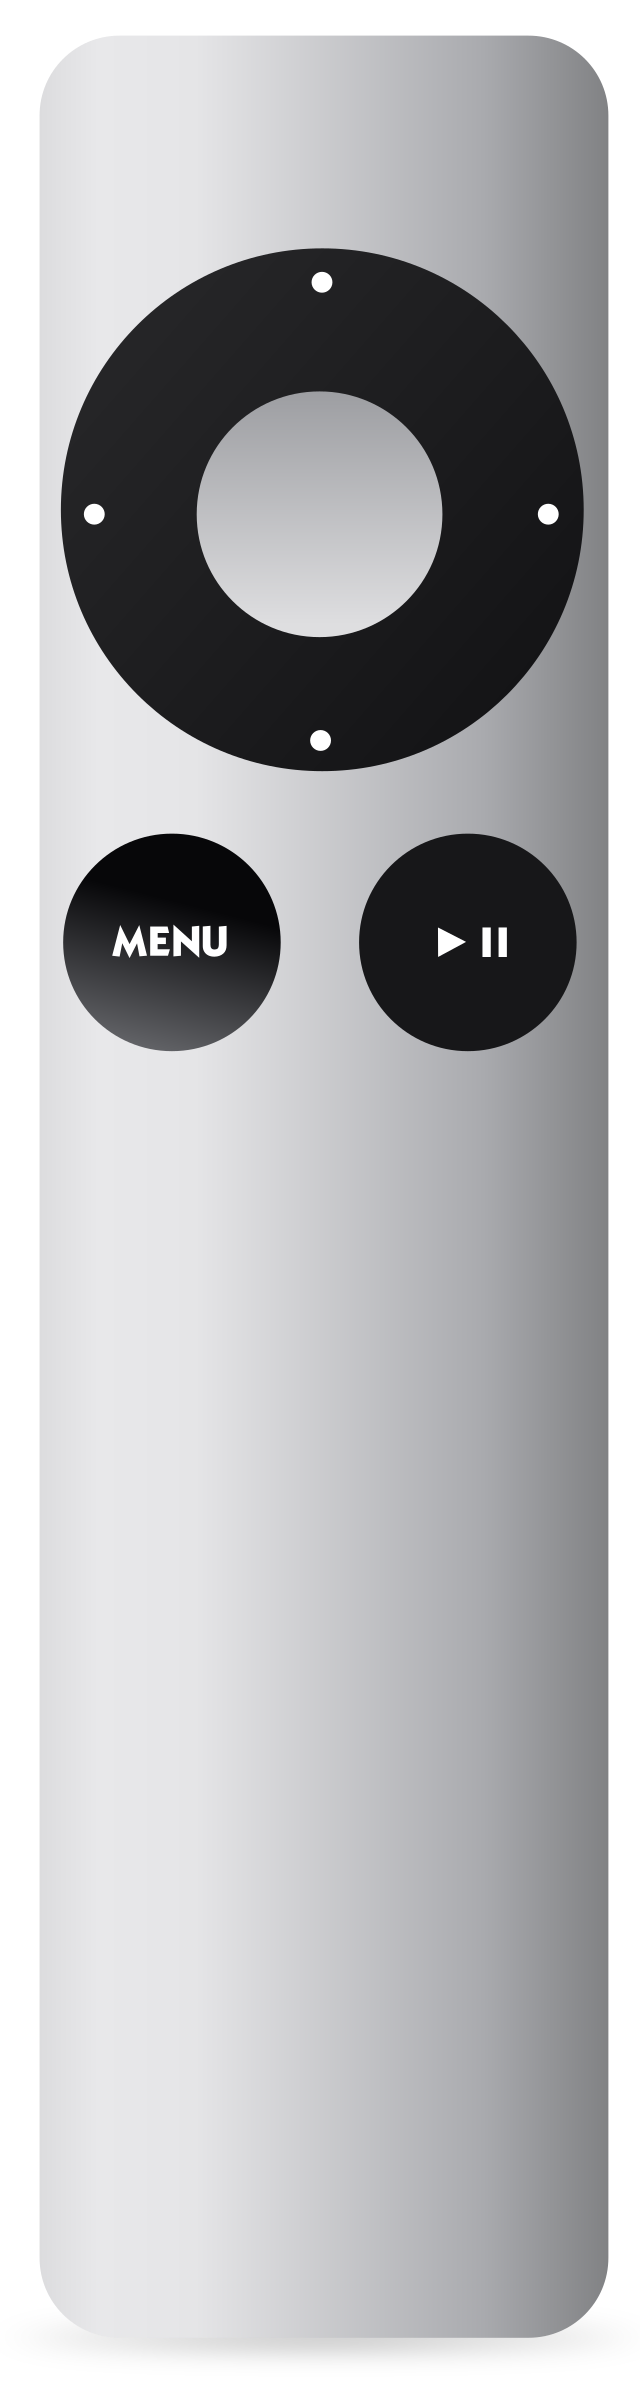 Apple Remote Aluminum by jhnri4